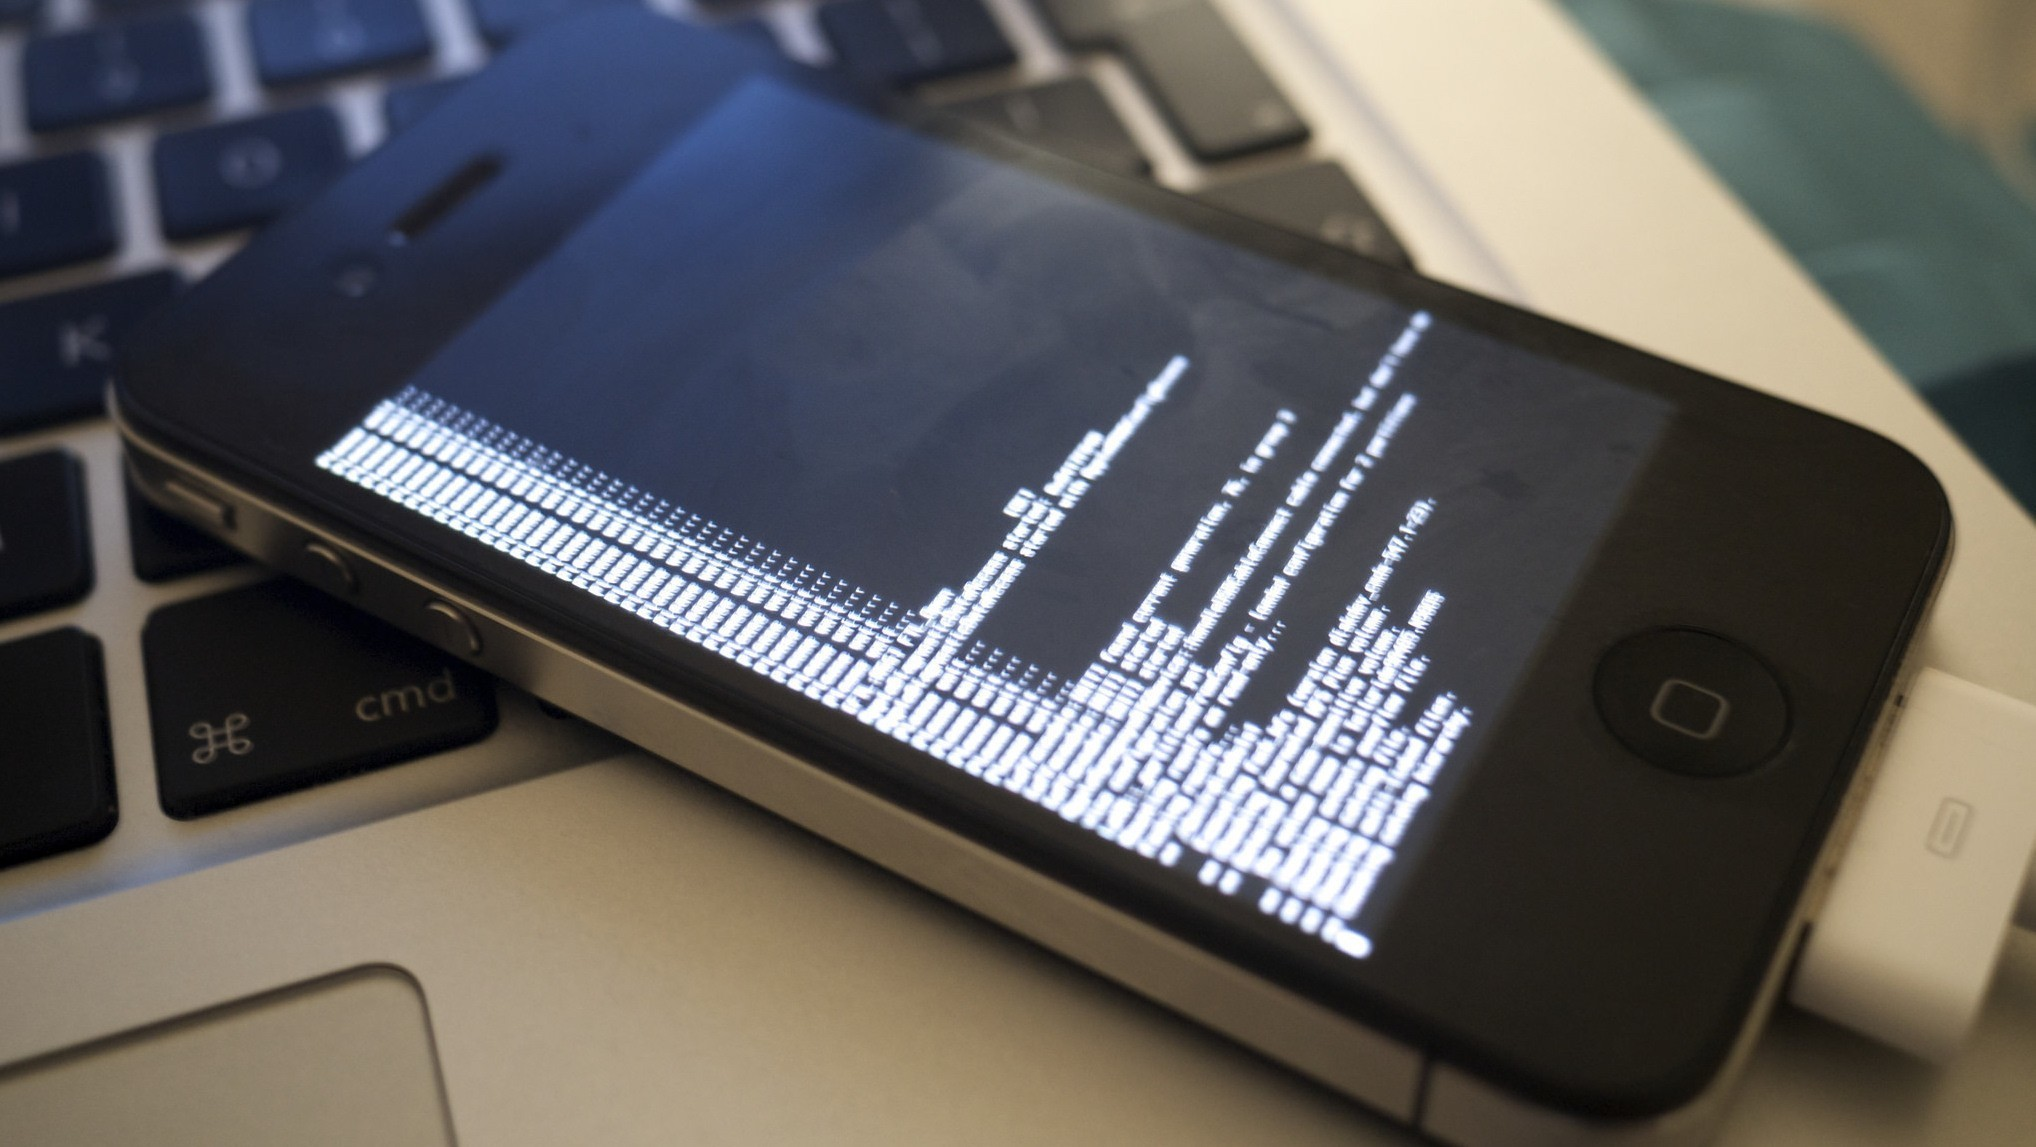 Companies Can't Legally Void the Warranty for Jailbreaking or Rooting Your Phone